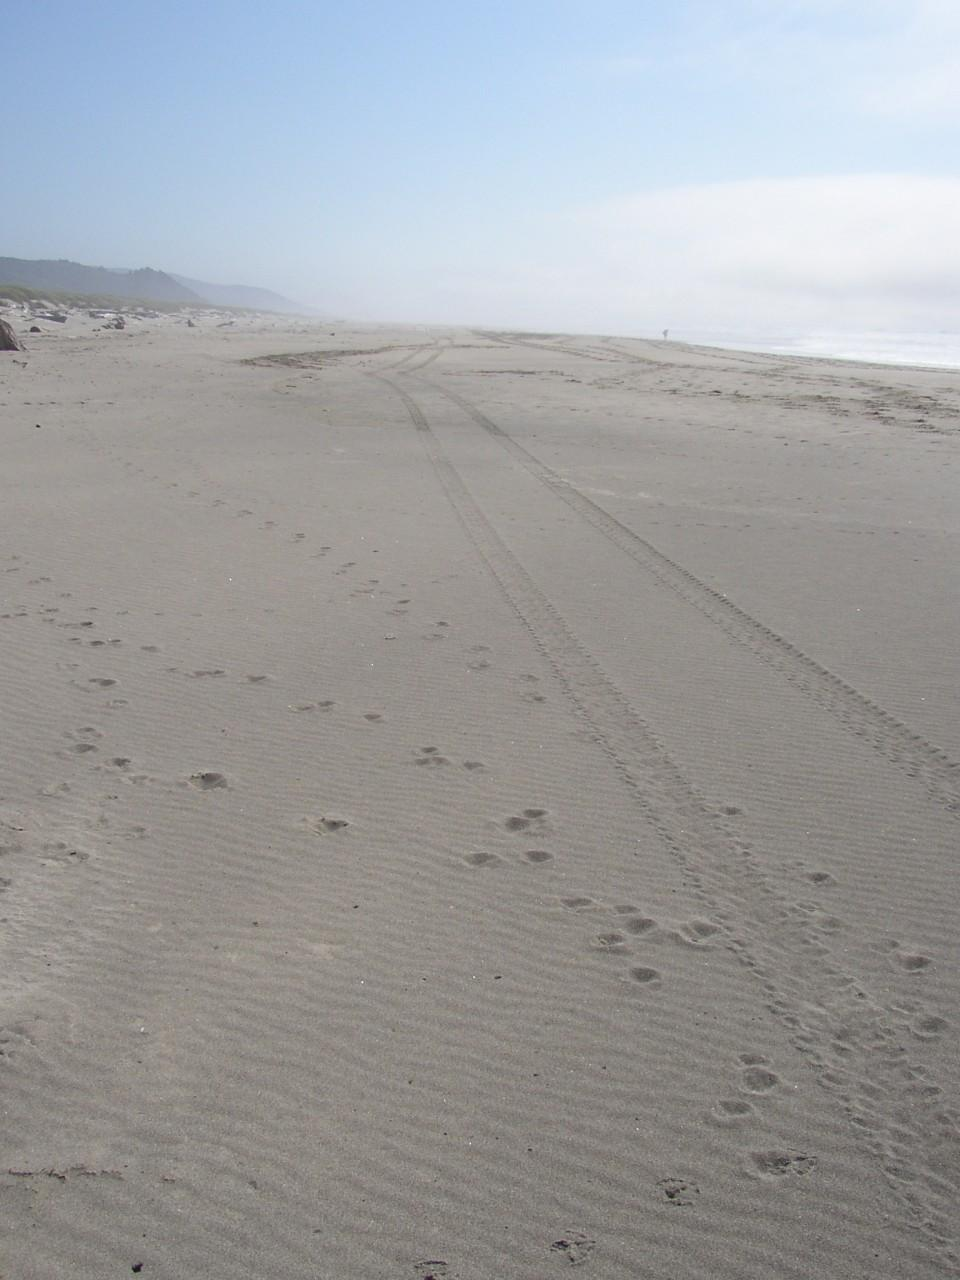 The ATV tracks ran along the beach above the surfline for much of the mile.